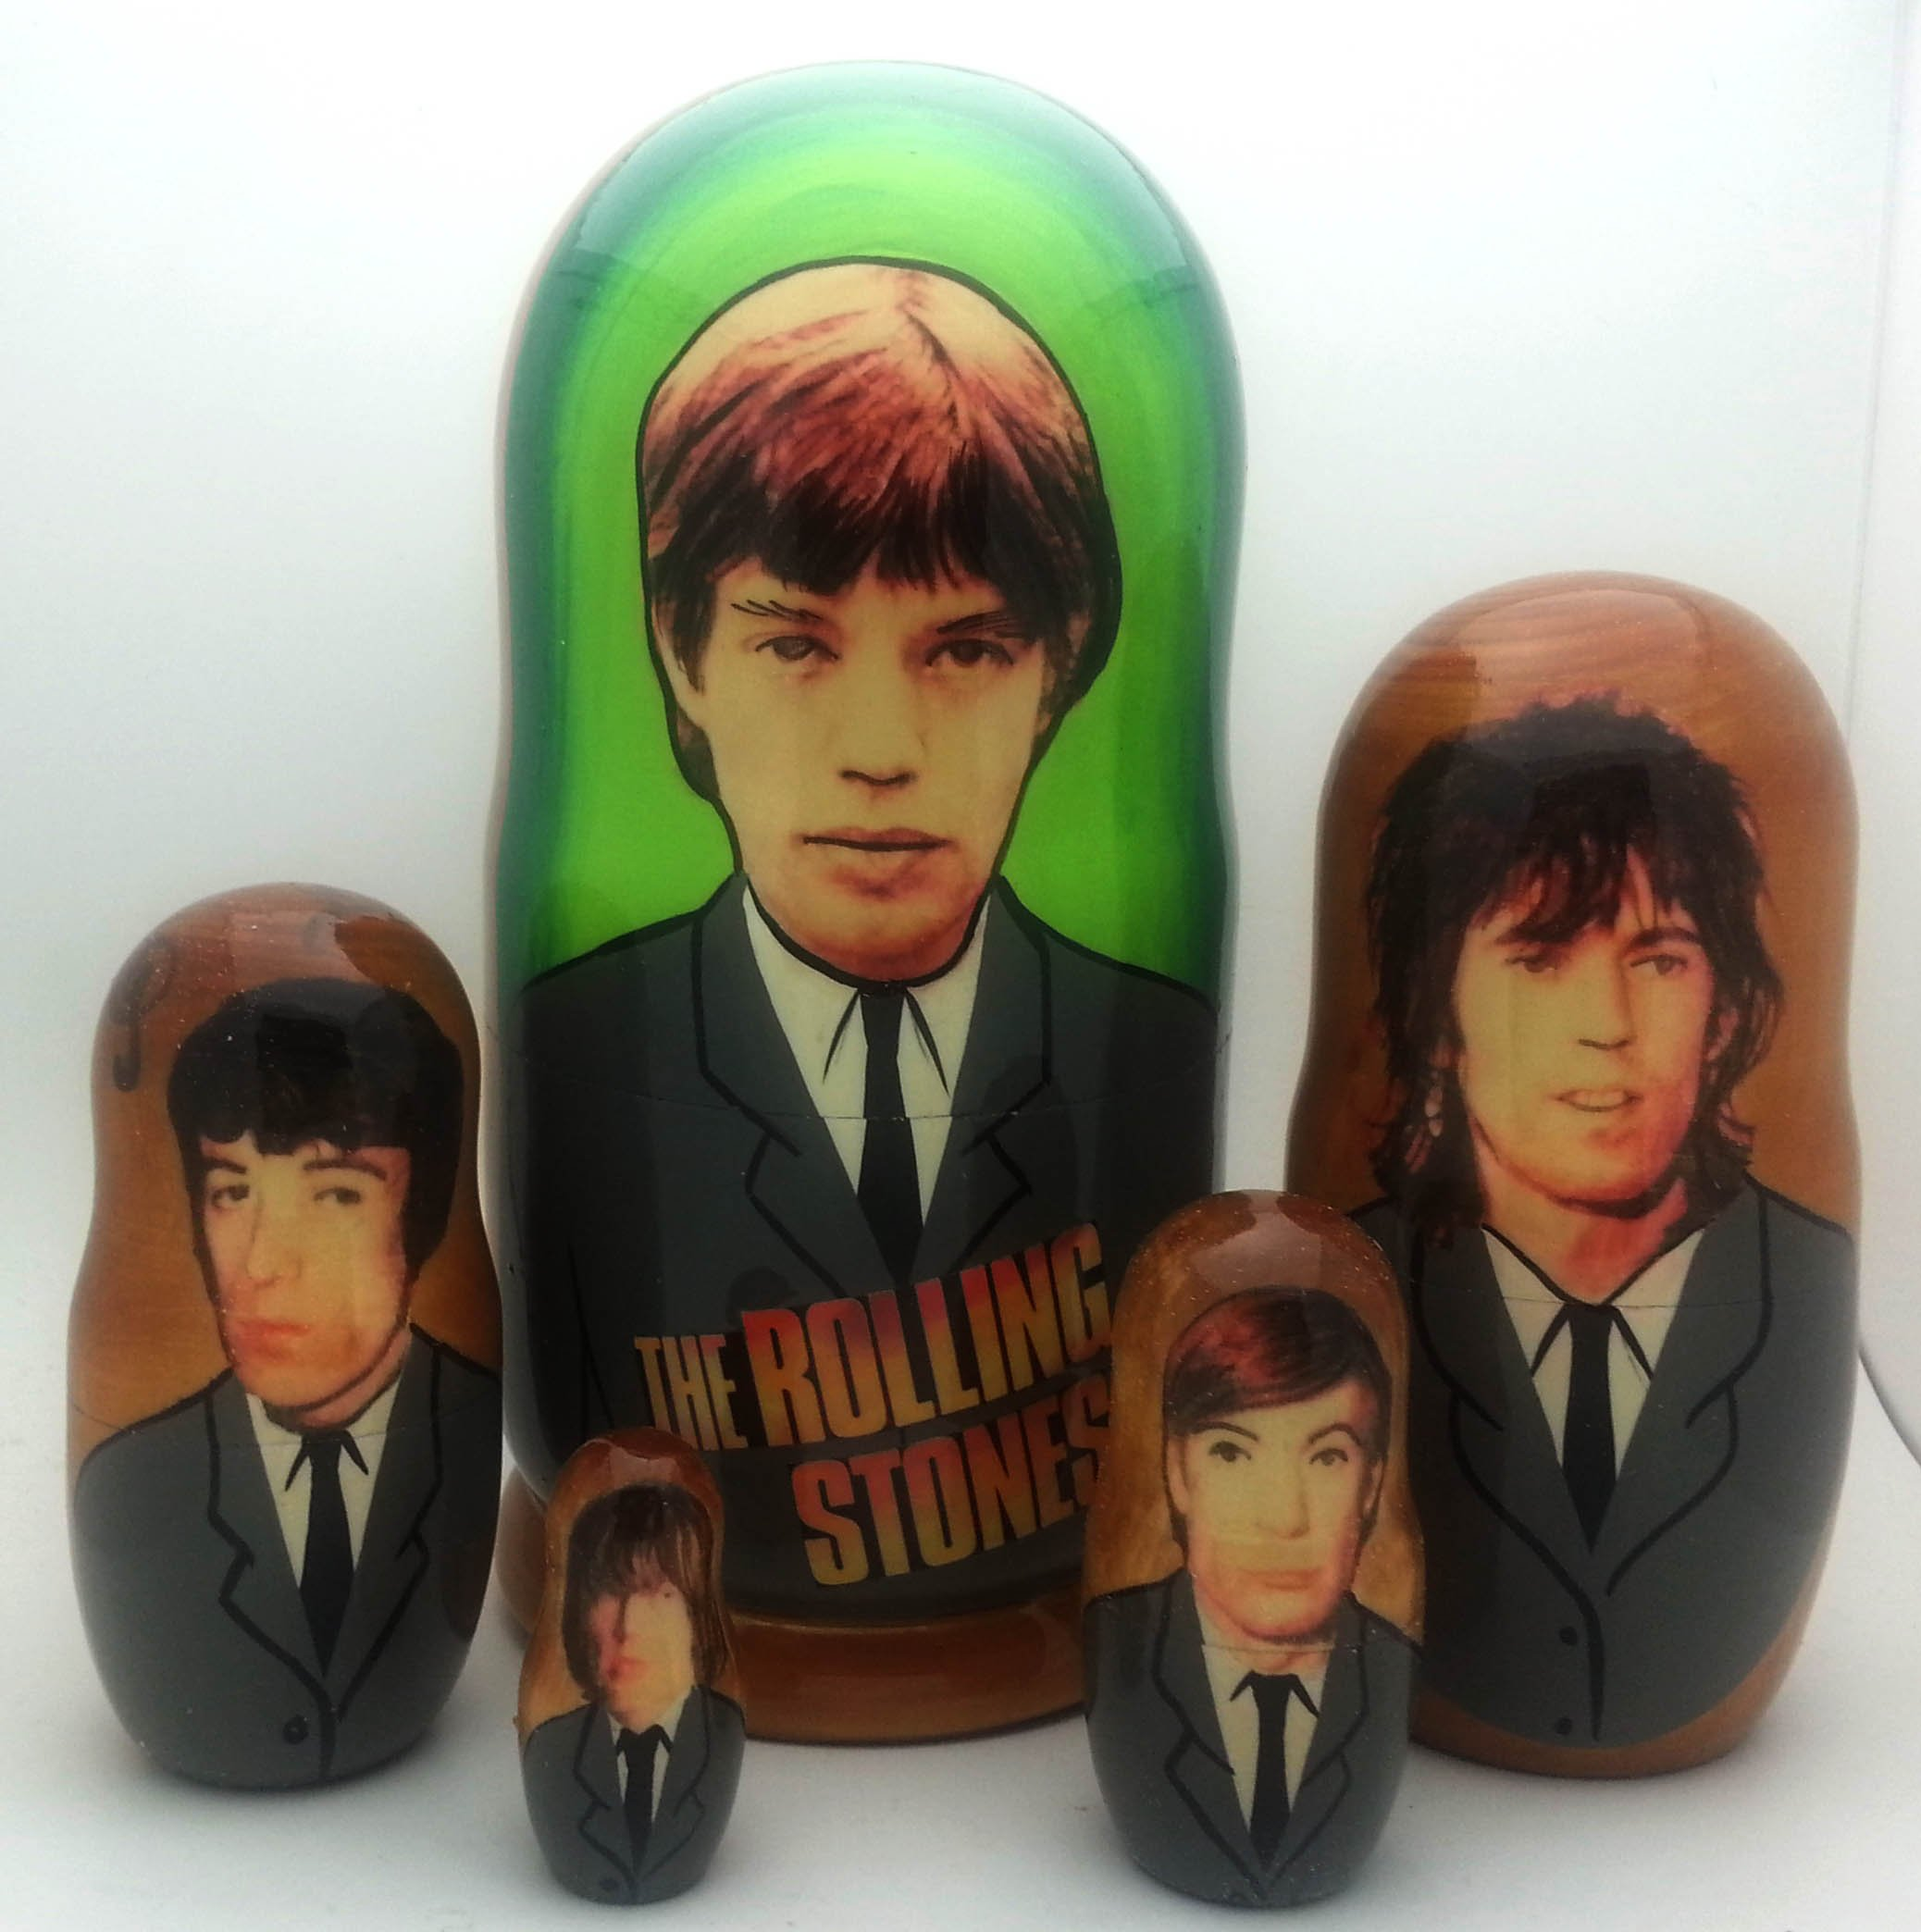 Rolling Stones Russian Nesting dolls 5 piece DOLL Set 7 by BuyRussianGifts